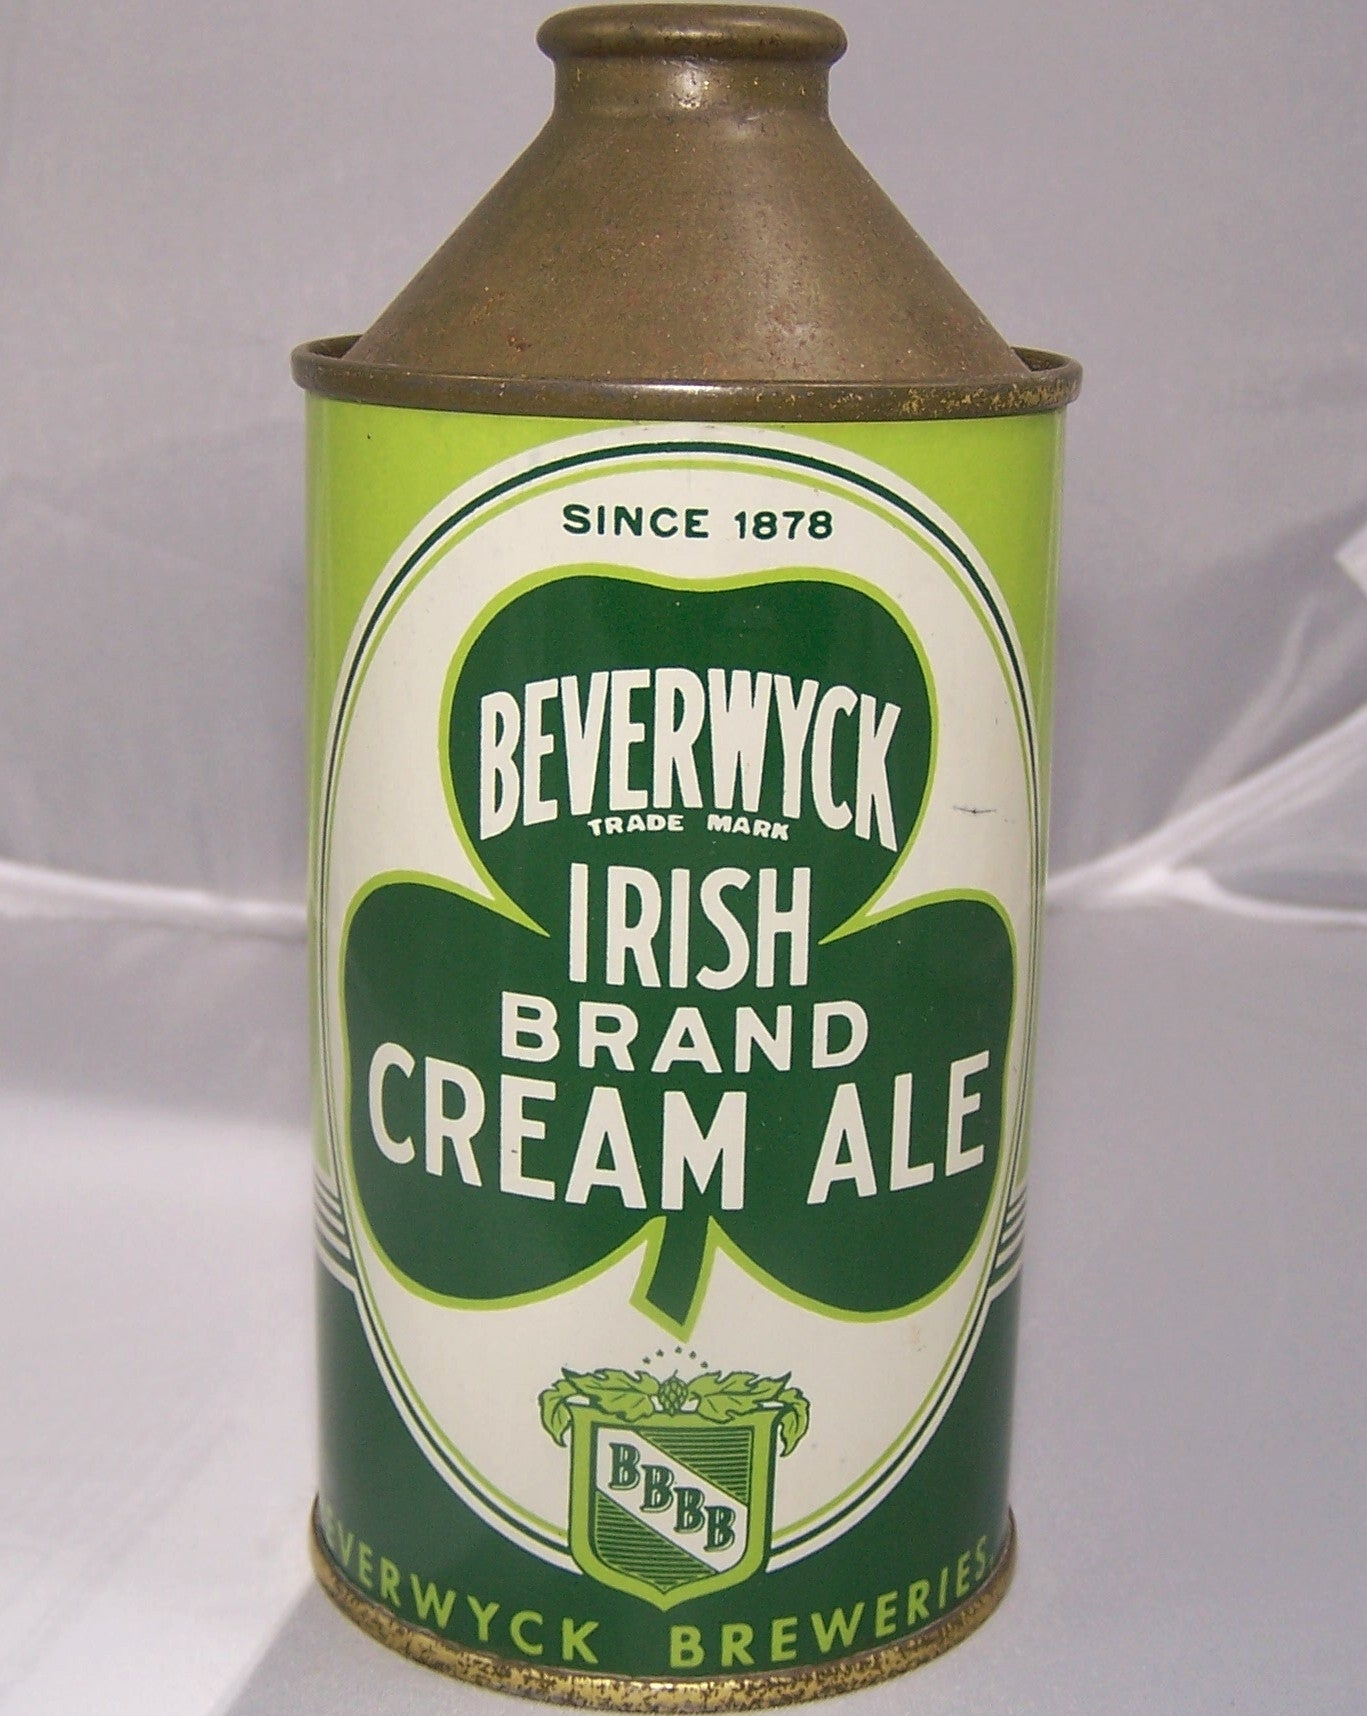 Beverwyck Irish Brand Cream Ale, USBC 152-6, Grade 1/1+ Sold on 2/28/15